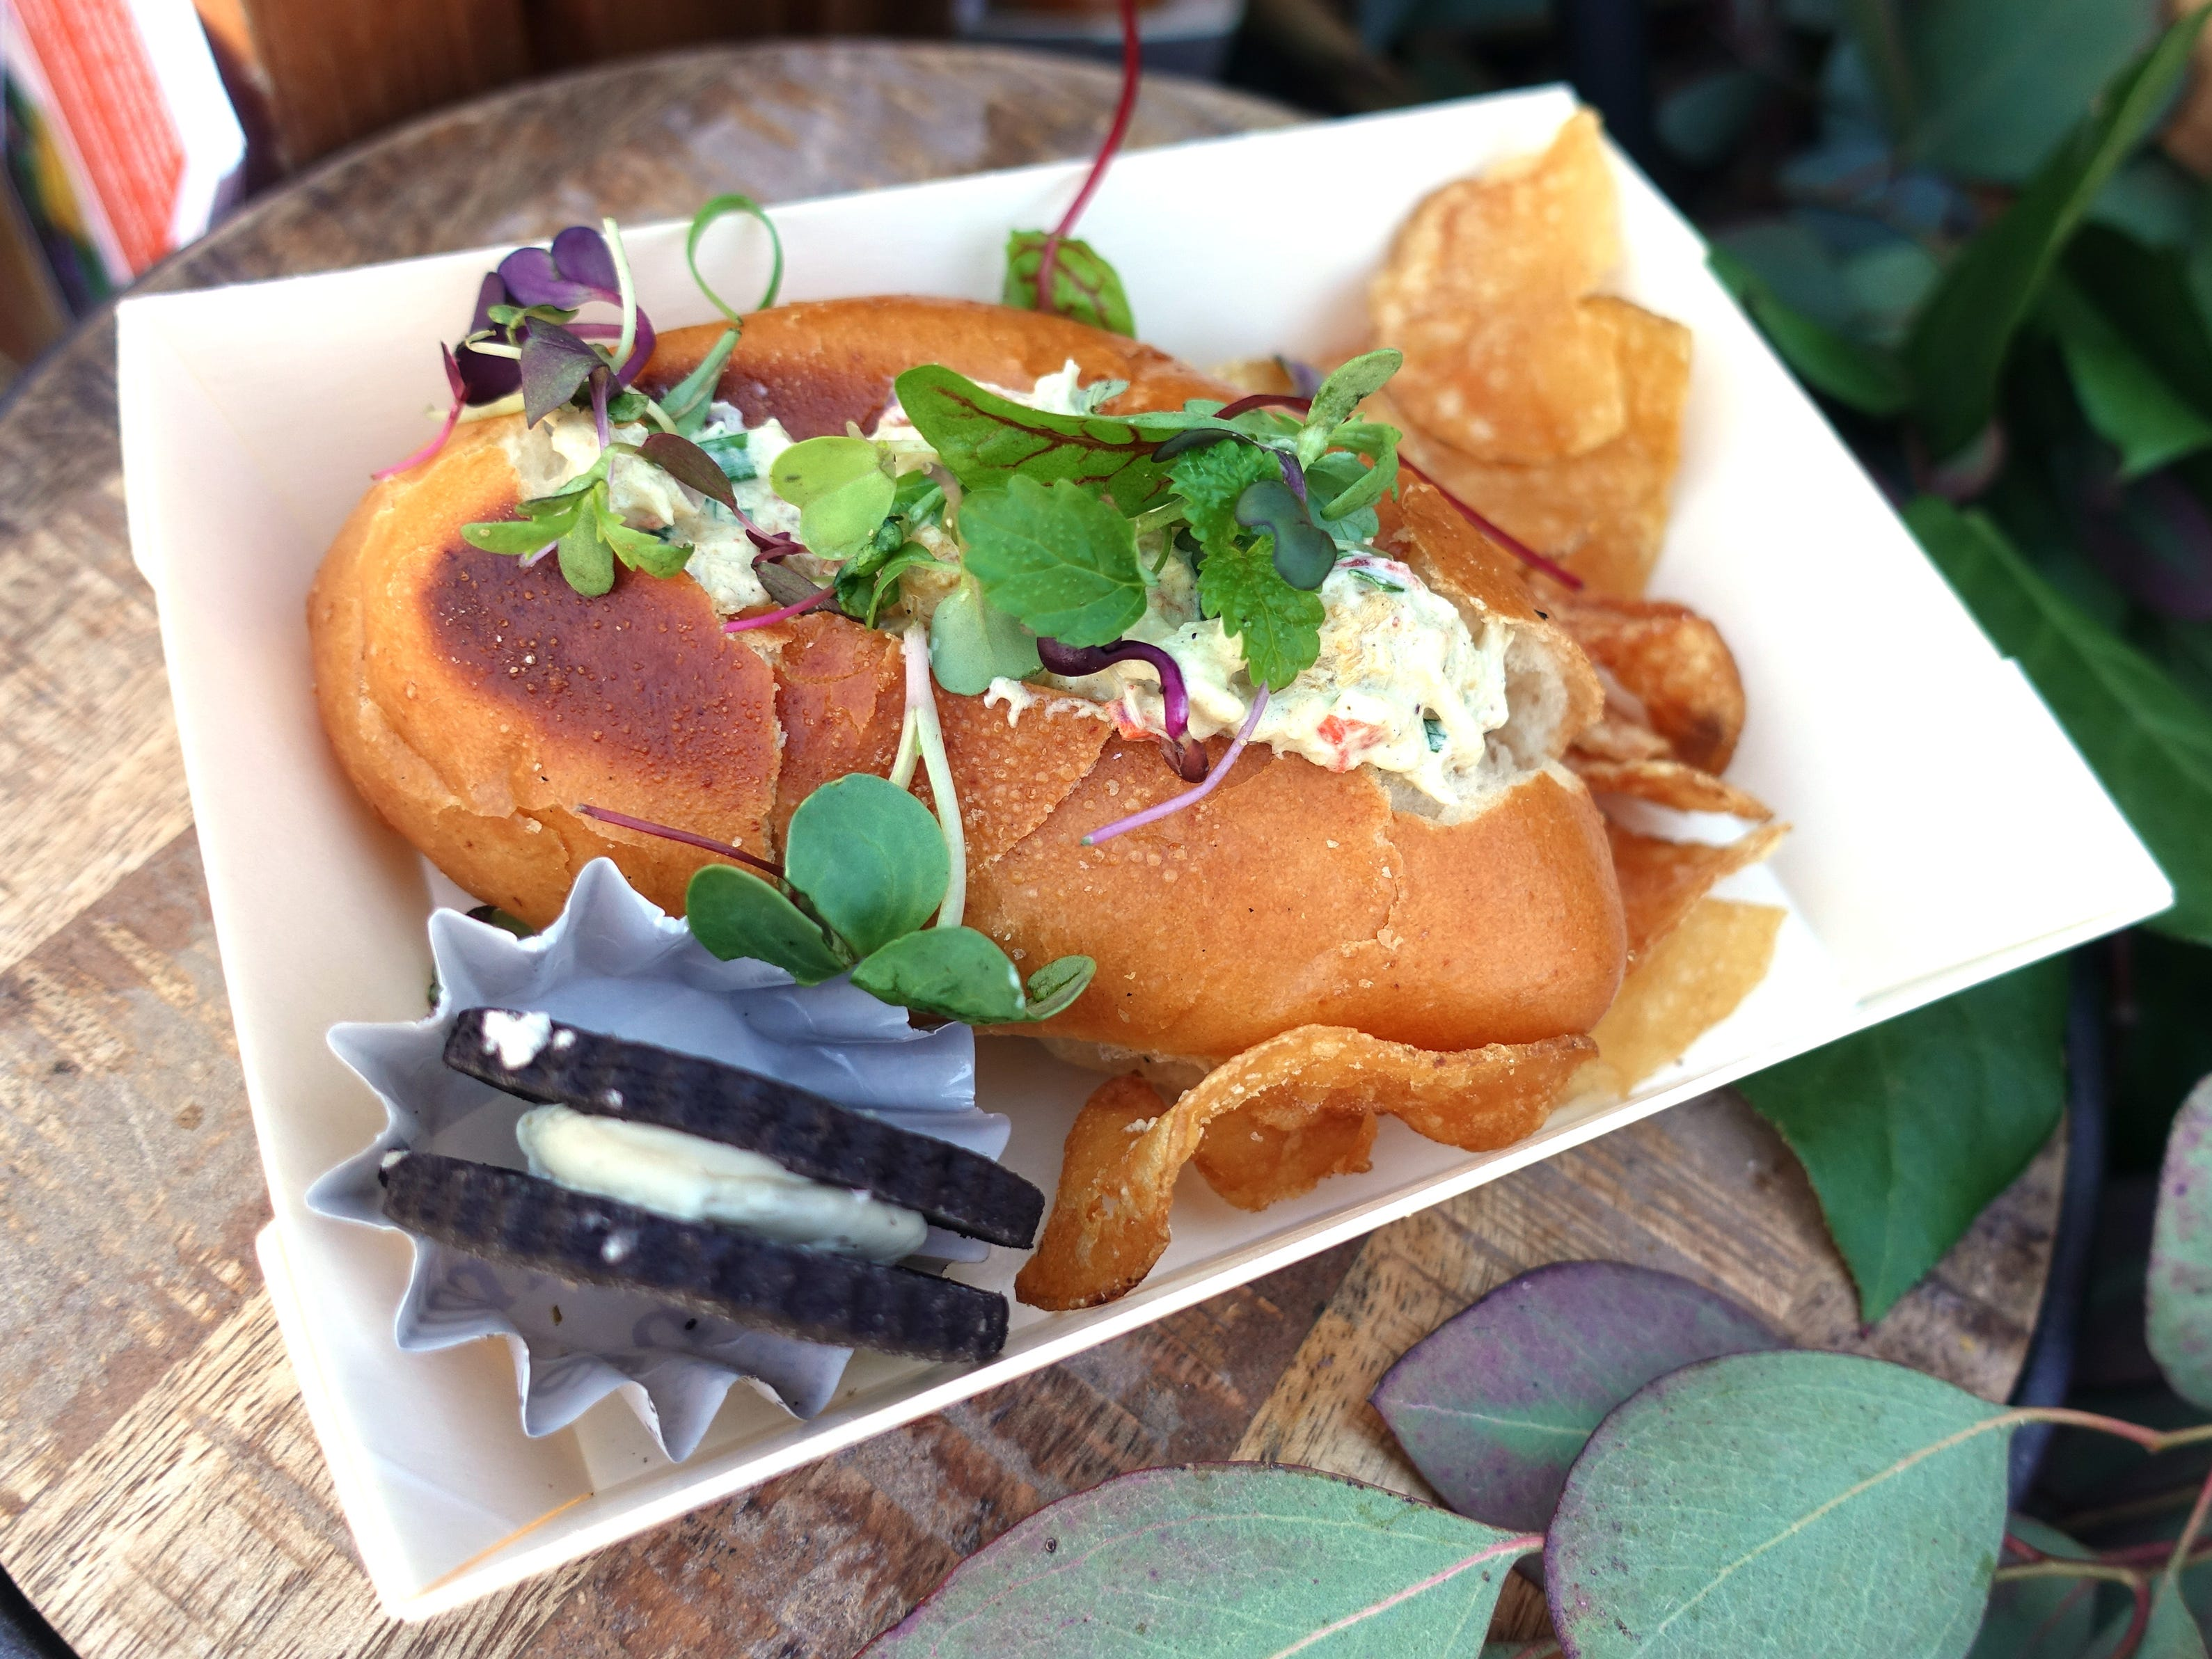 Lobster and shrimp roll with malted chips and lavender oreo cookie from Dust Cutter at the Devour Culinary Classic at the Desert Botanical Garden in Phoenix.